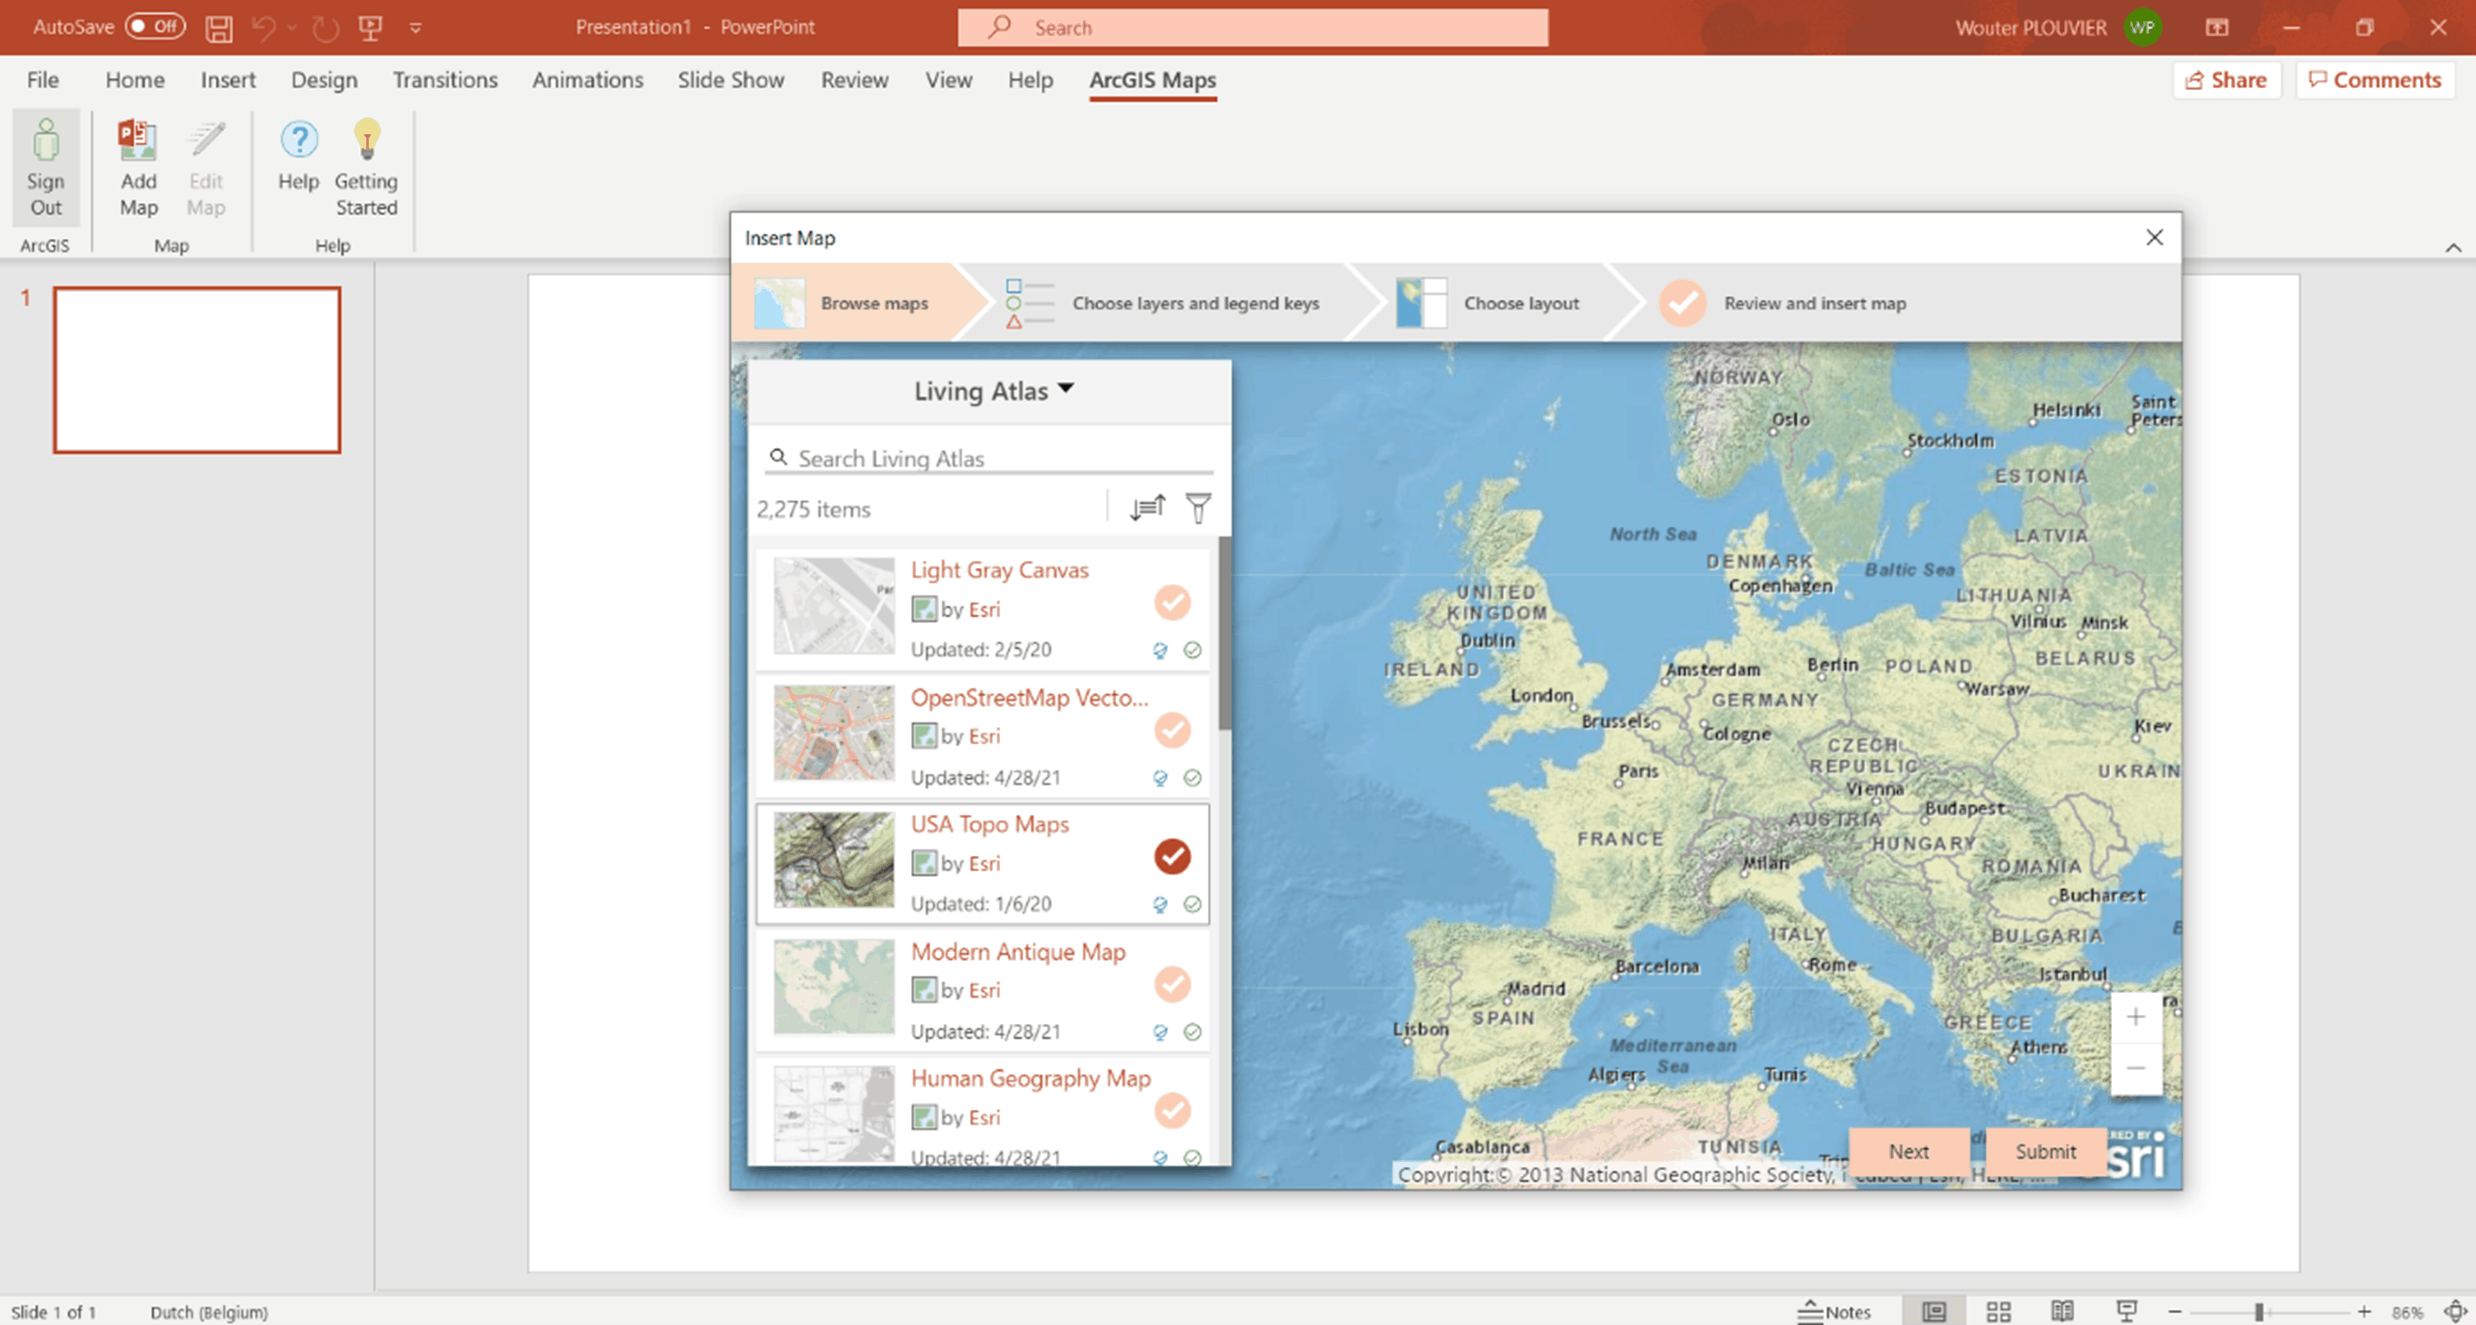 Powerpoint - ArcGIS for Office